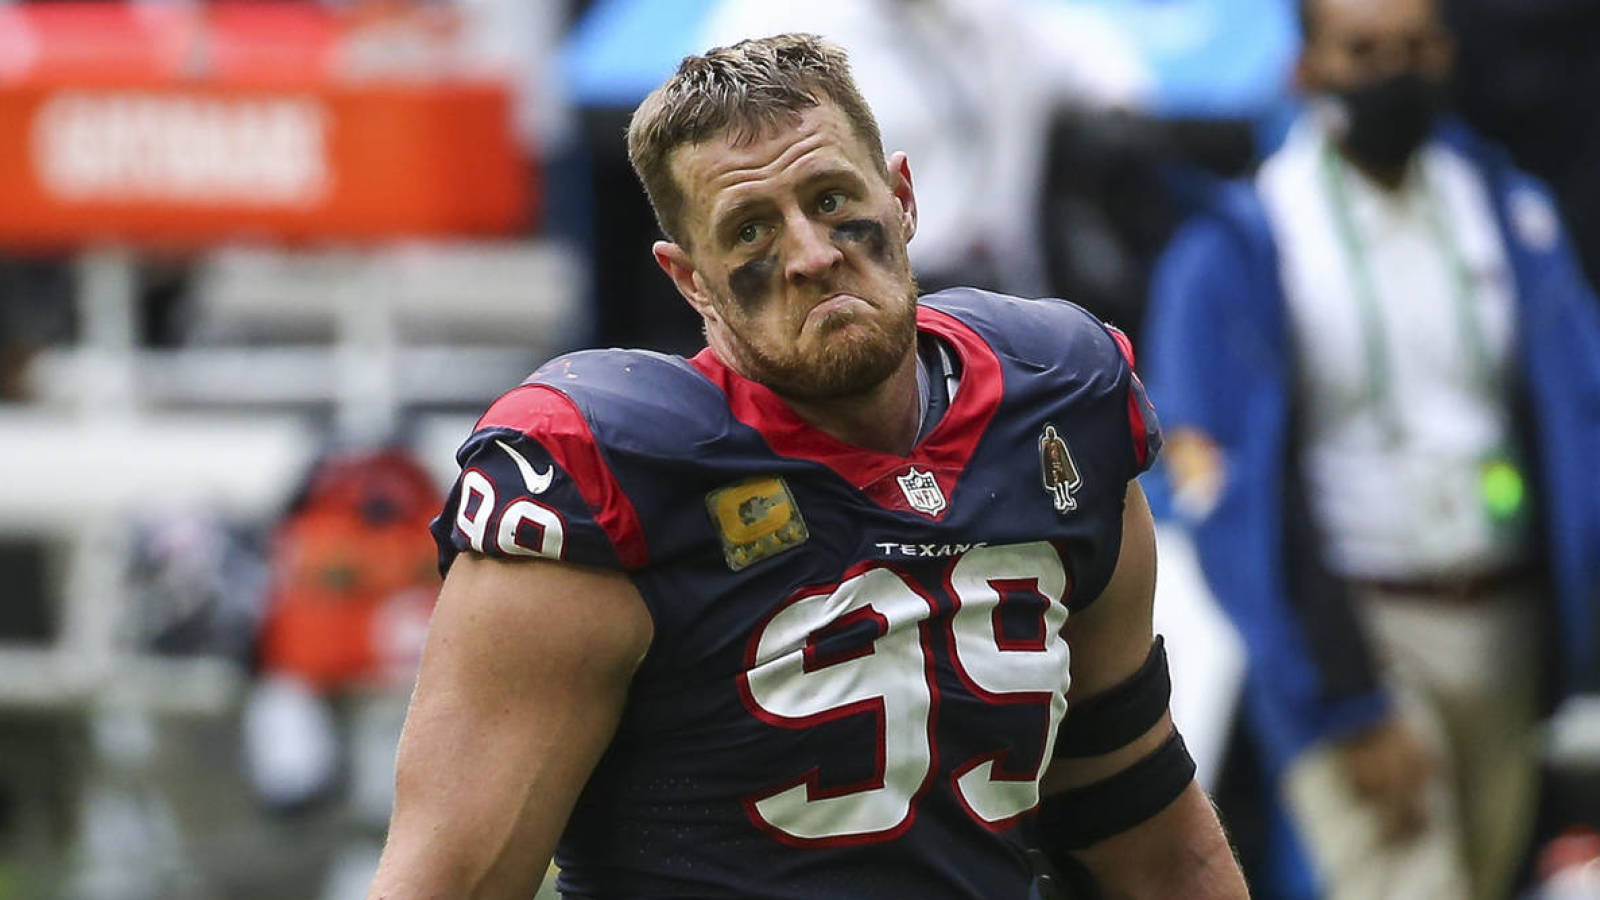 Packers emerge as betting favorite to sign J.J. Watt | Yardbarker